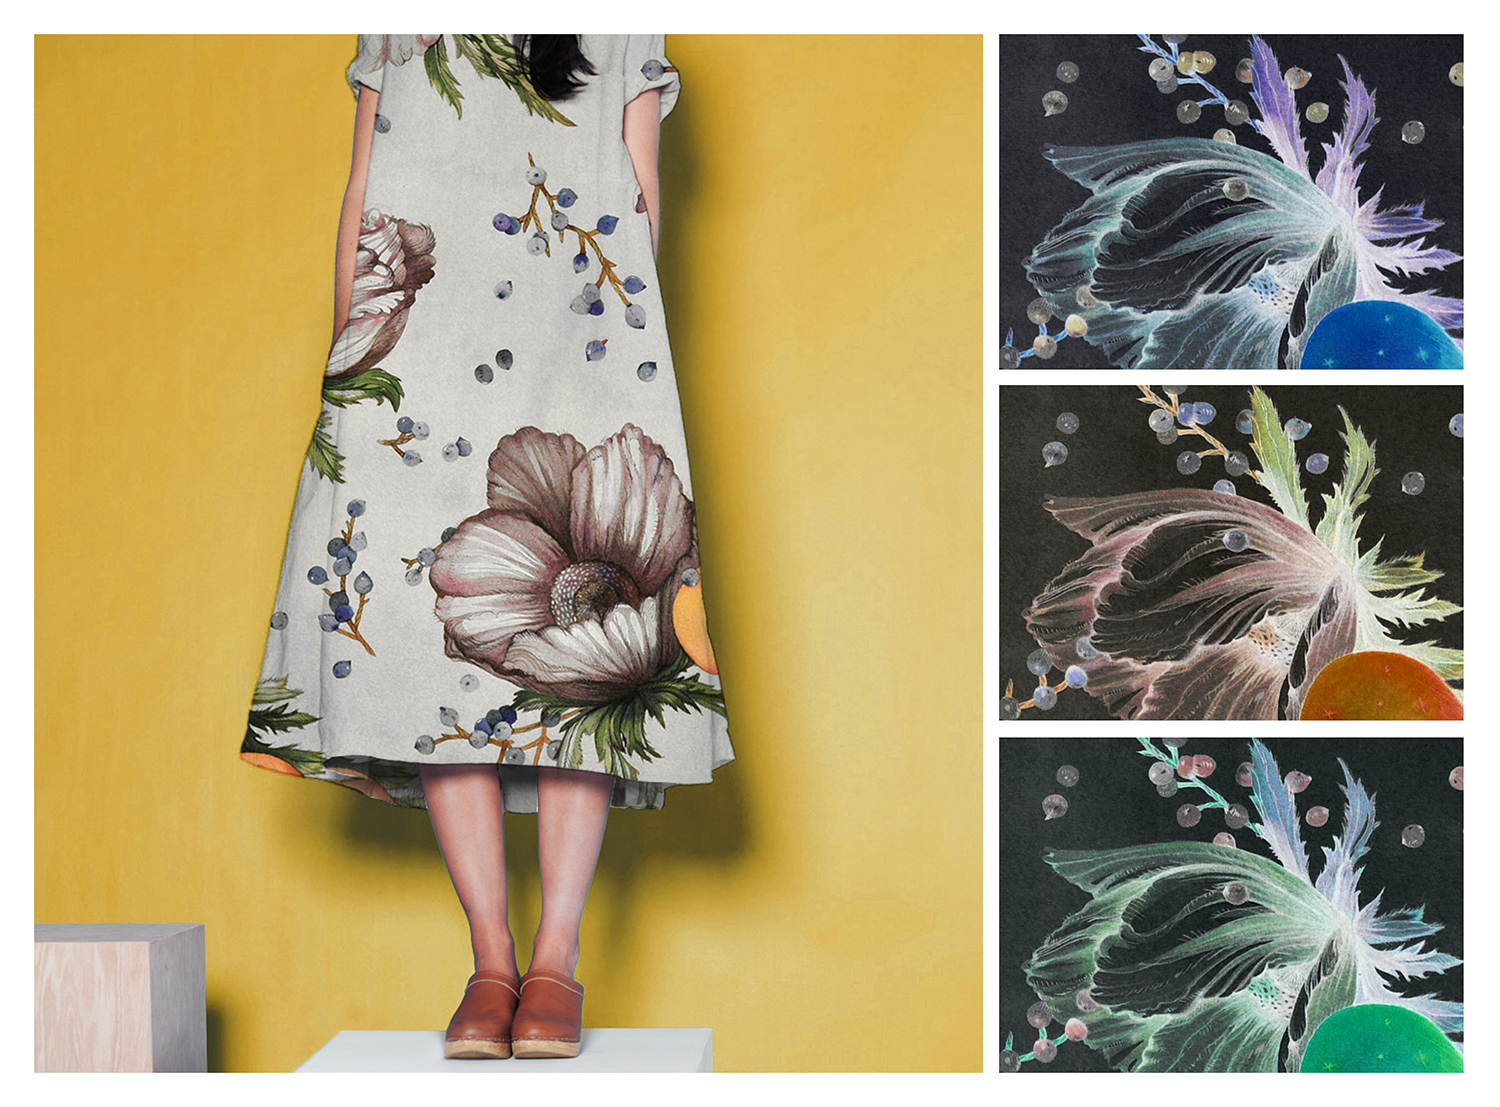 ANEMONE   Shown on dress, with details and colorways, hand-painted in dyes